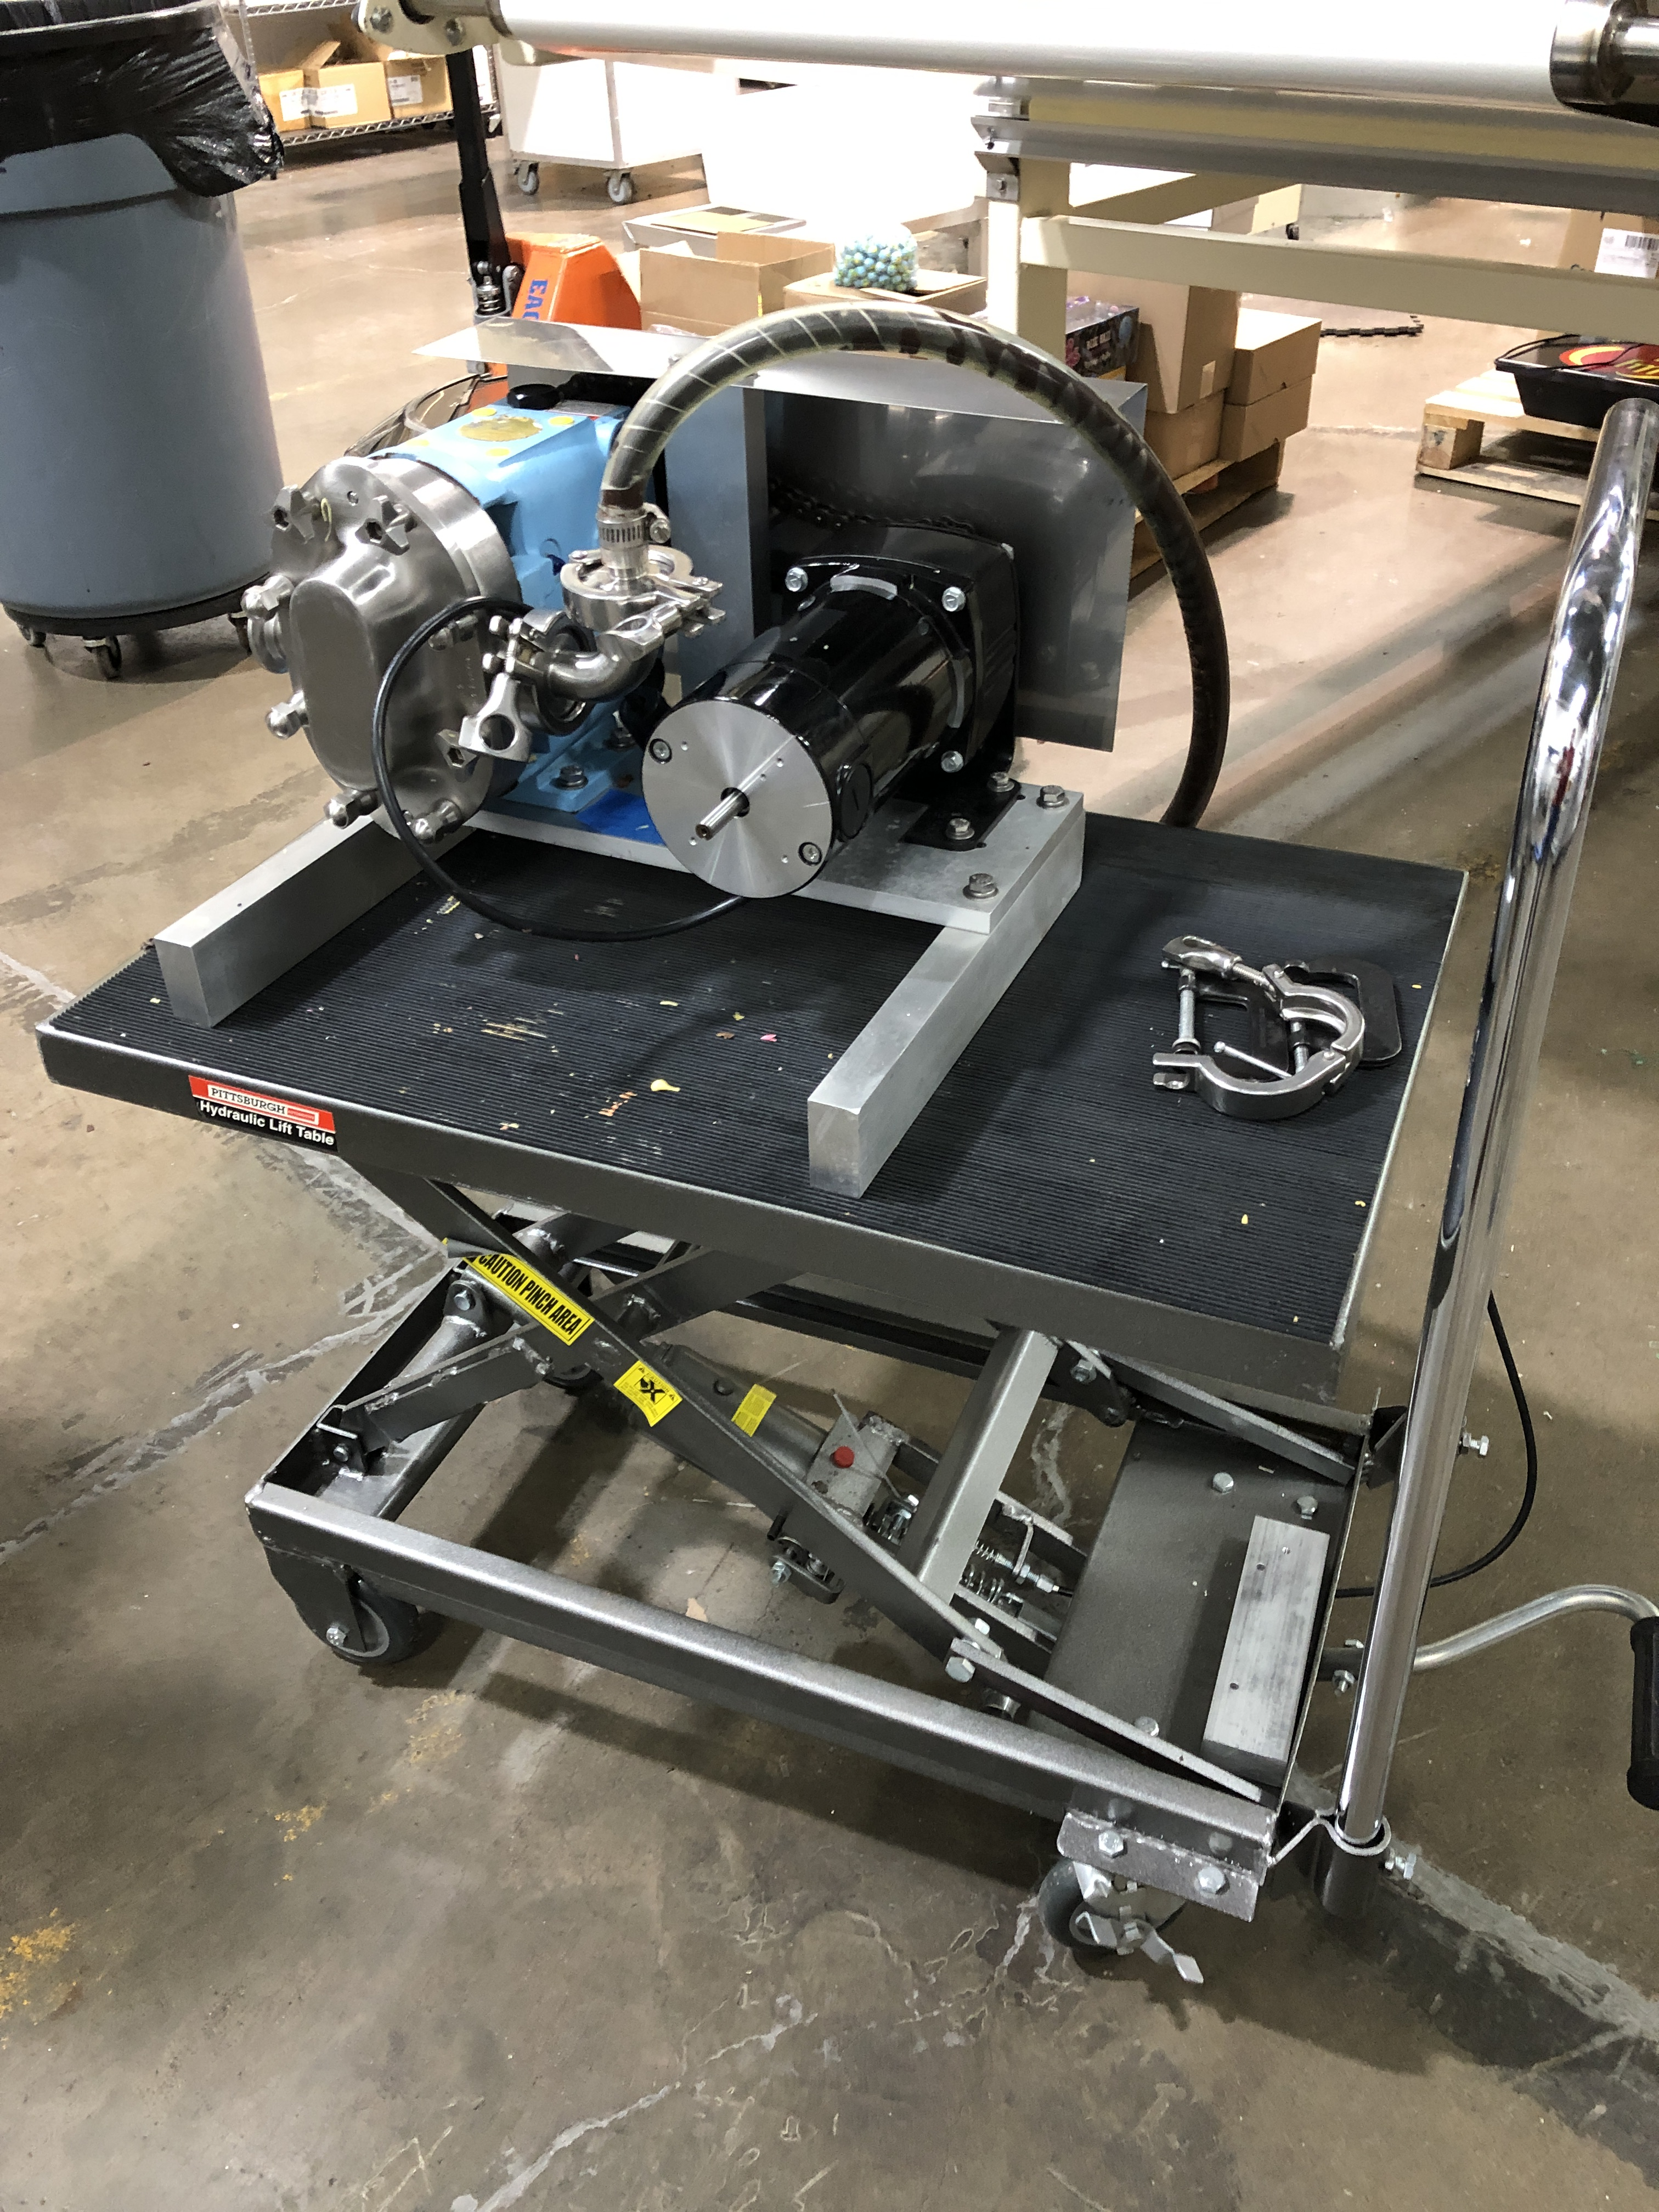 """Lot 27 - Waukesha model 15 Stainless Steel Positive Displacement pump with 1.5"""" sanitary fittings in and out,"""